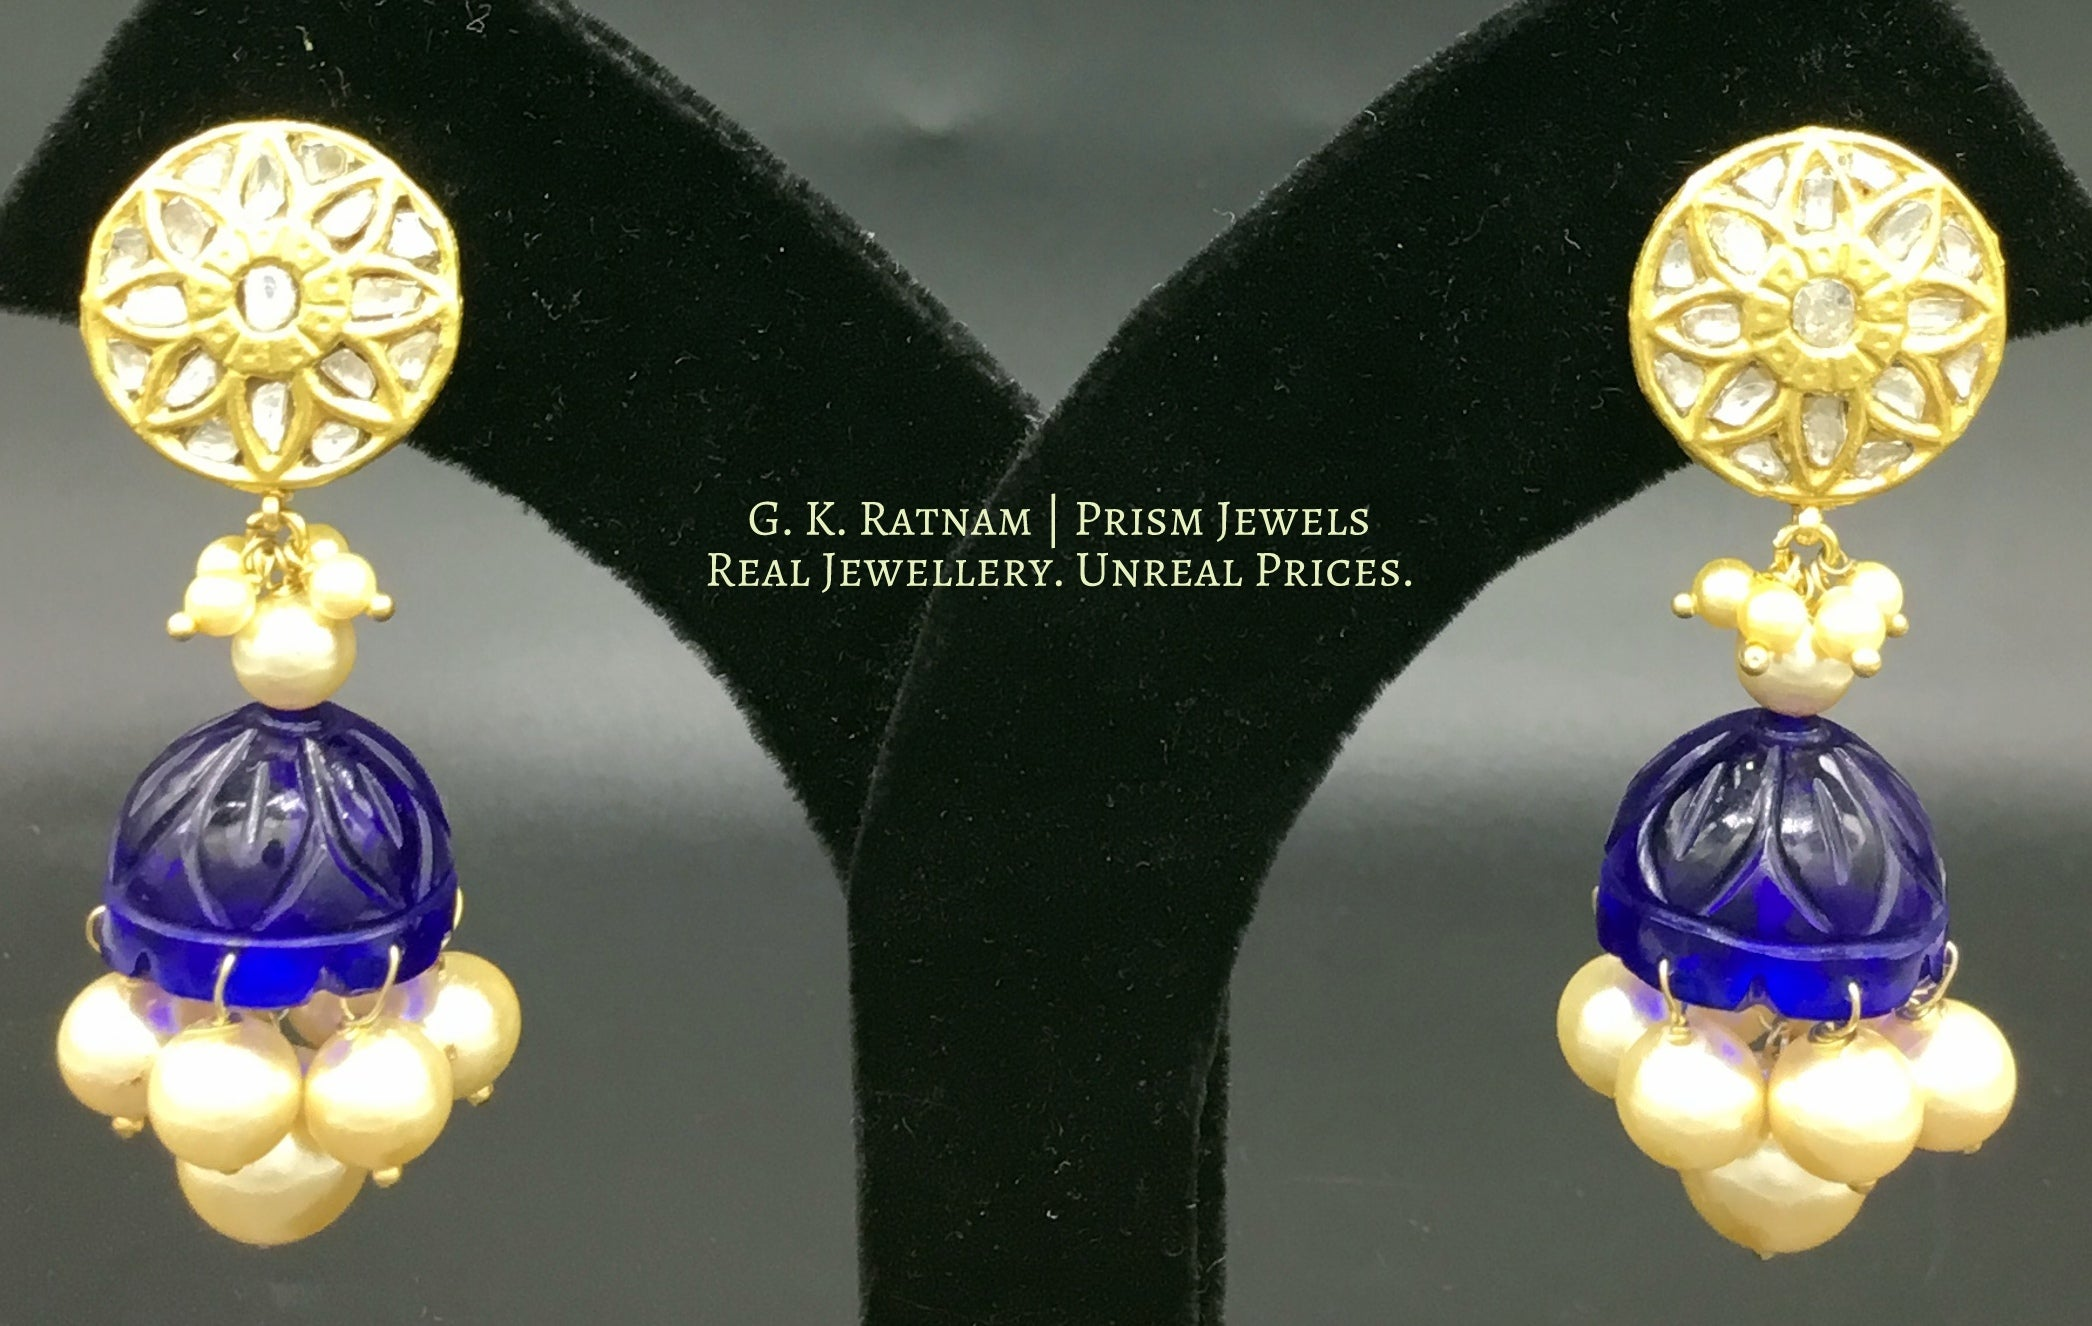 23k Gold and Diamond Polki Jhumki Earring Pair with royal blue glass jhumkas - gold diamond polki kundan meena jadau jewellery